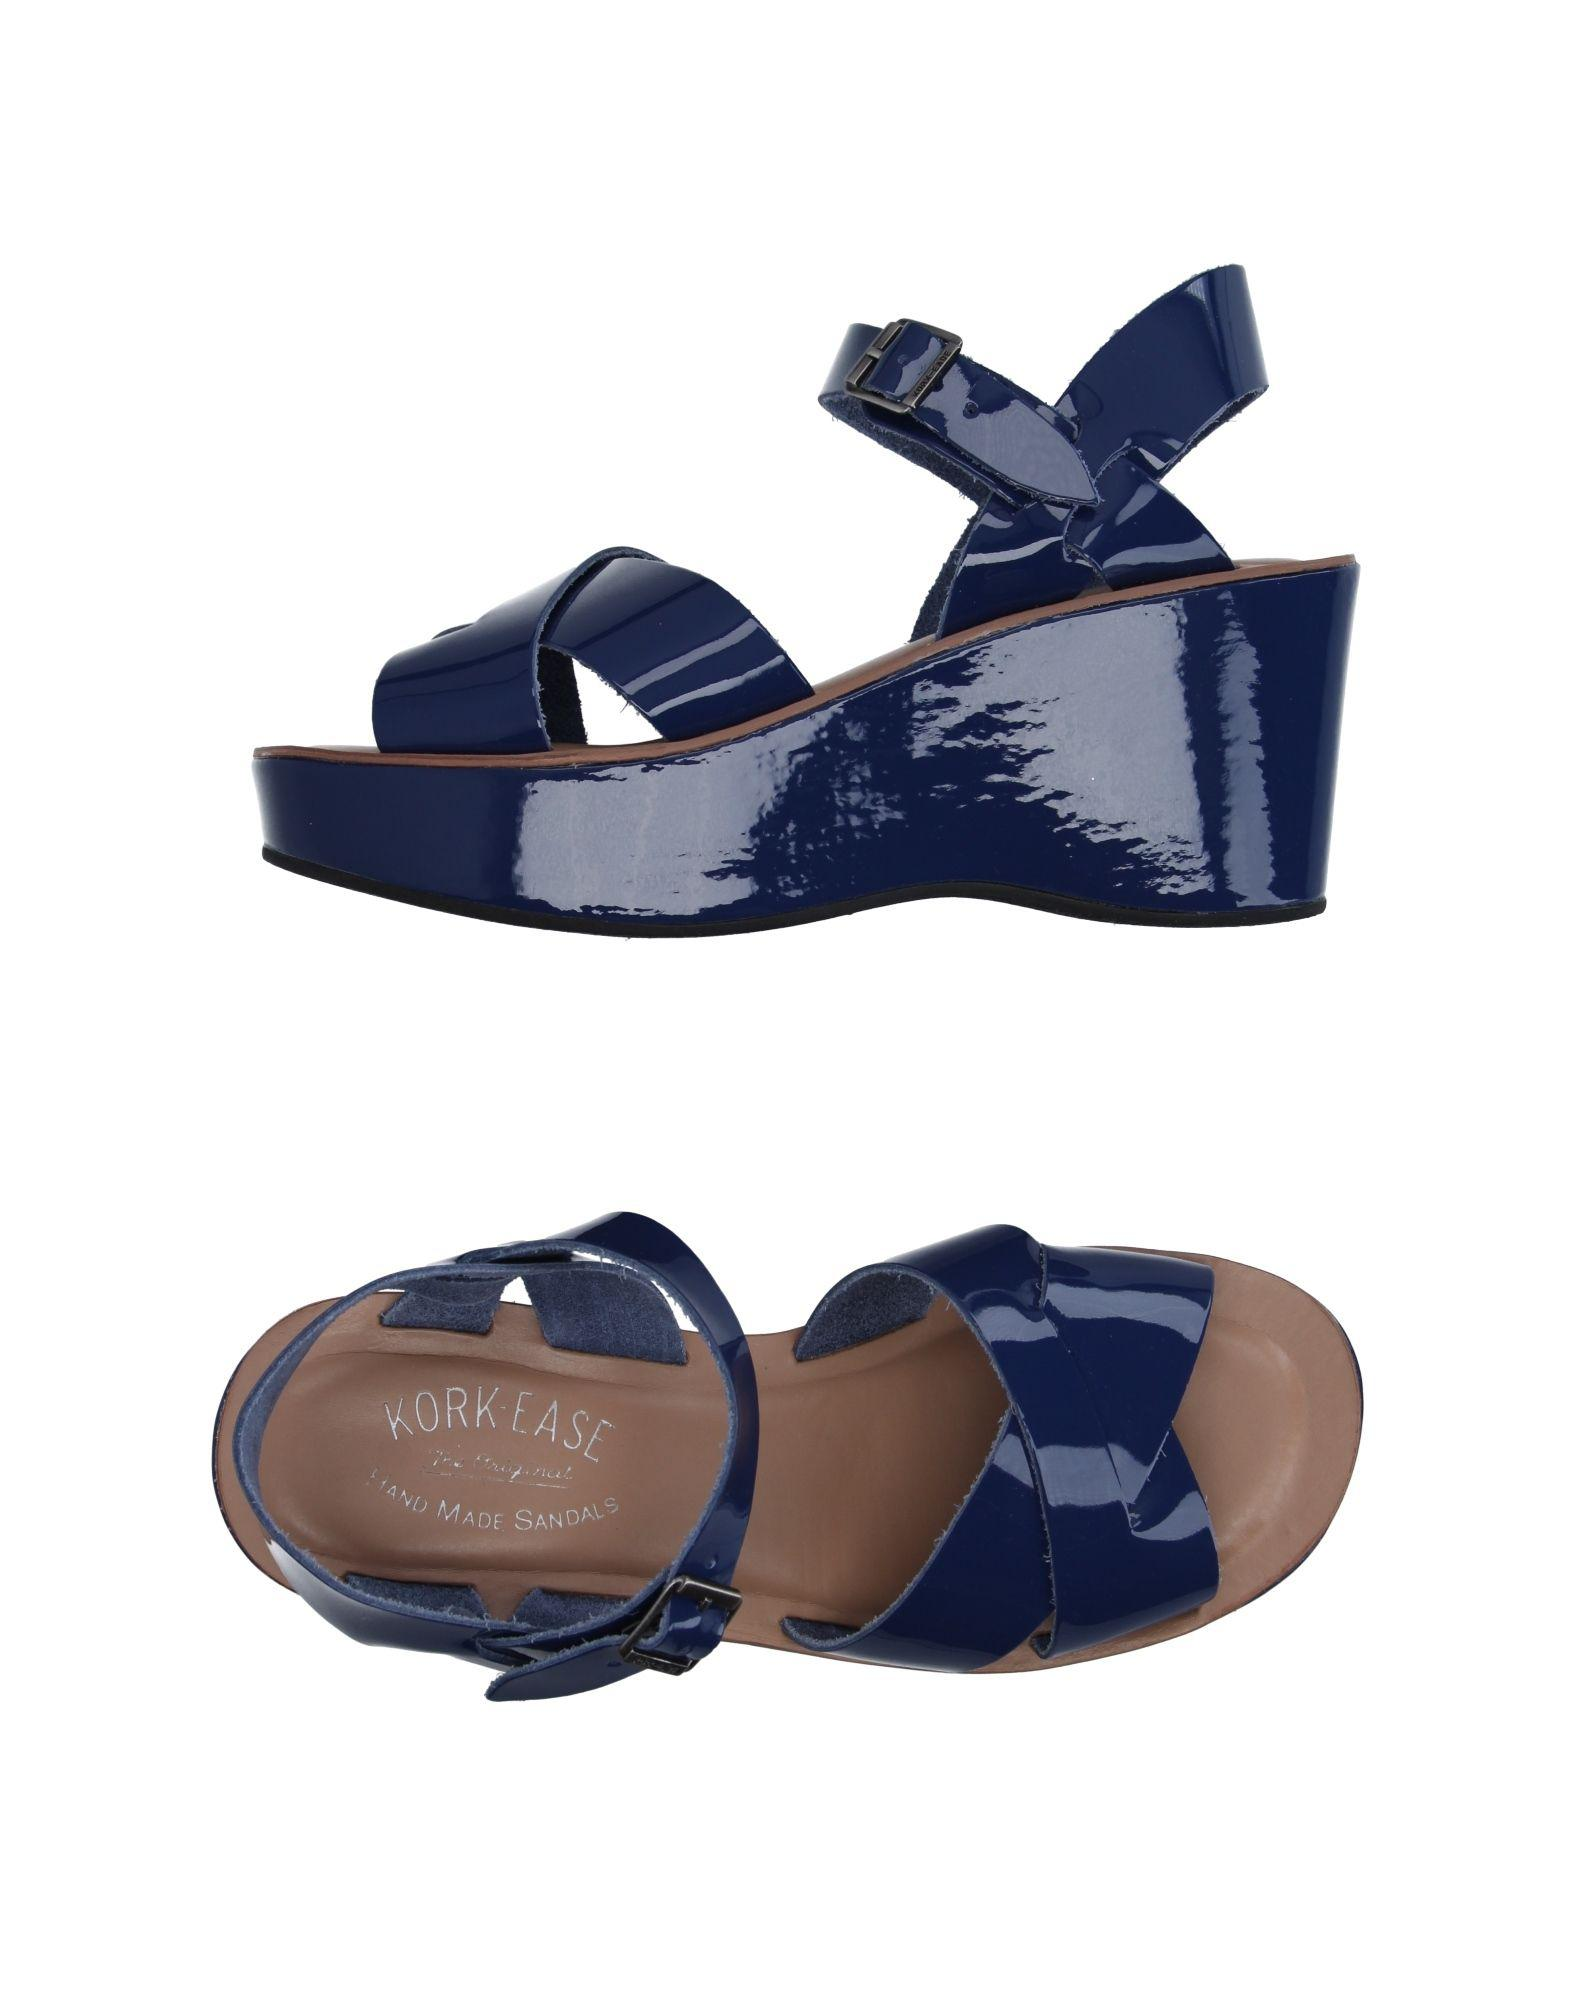 9f2c1b3d3 Lyst - Kork-Ease Sandals in Blue